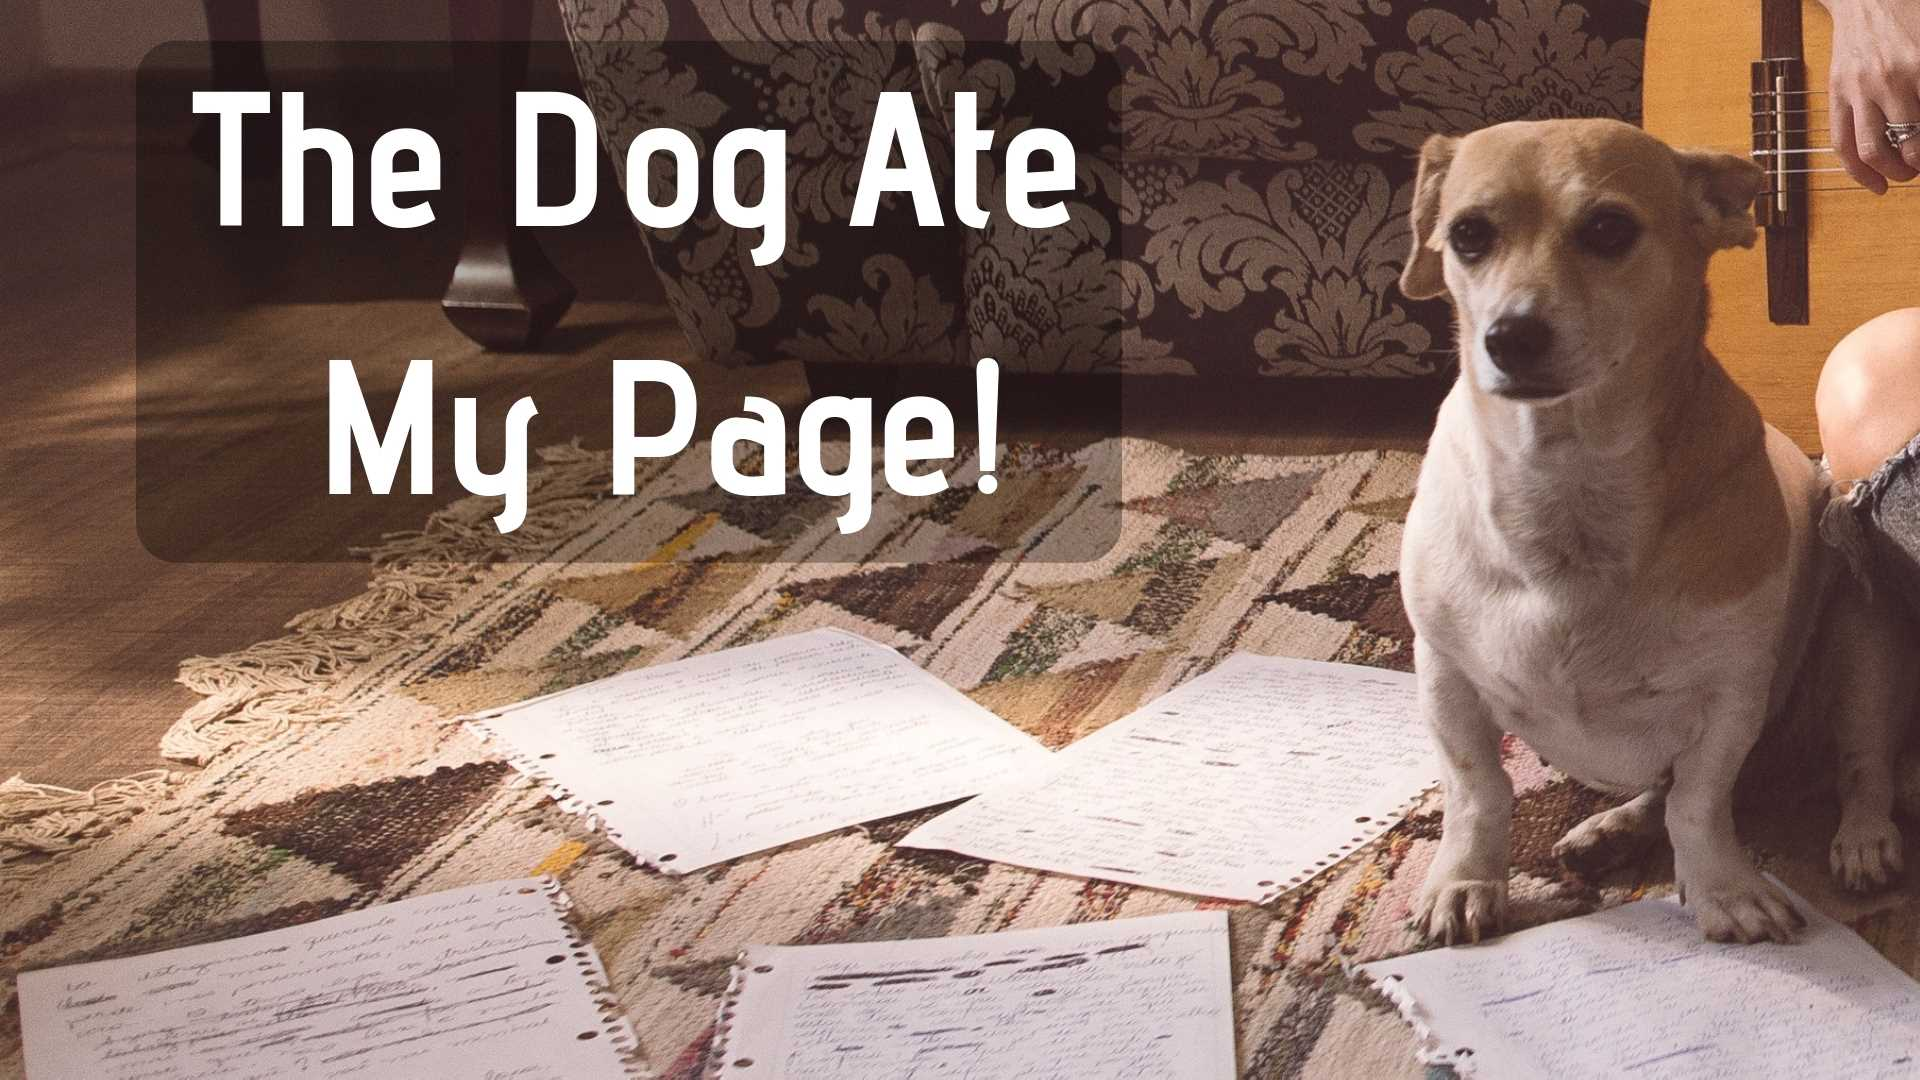 The Dog Ate My Page!compressed.jpg